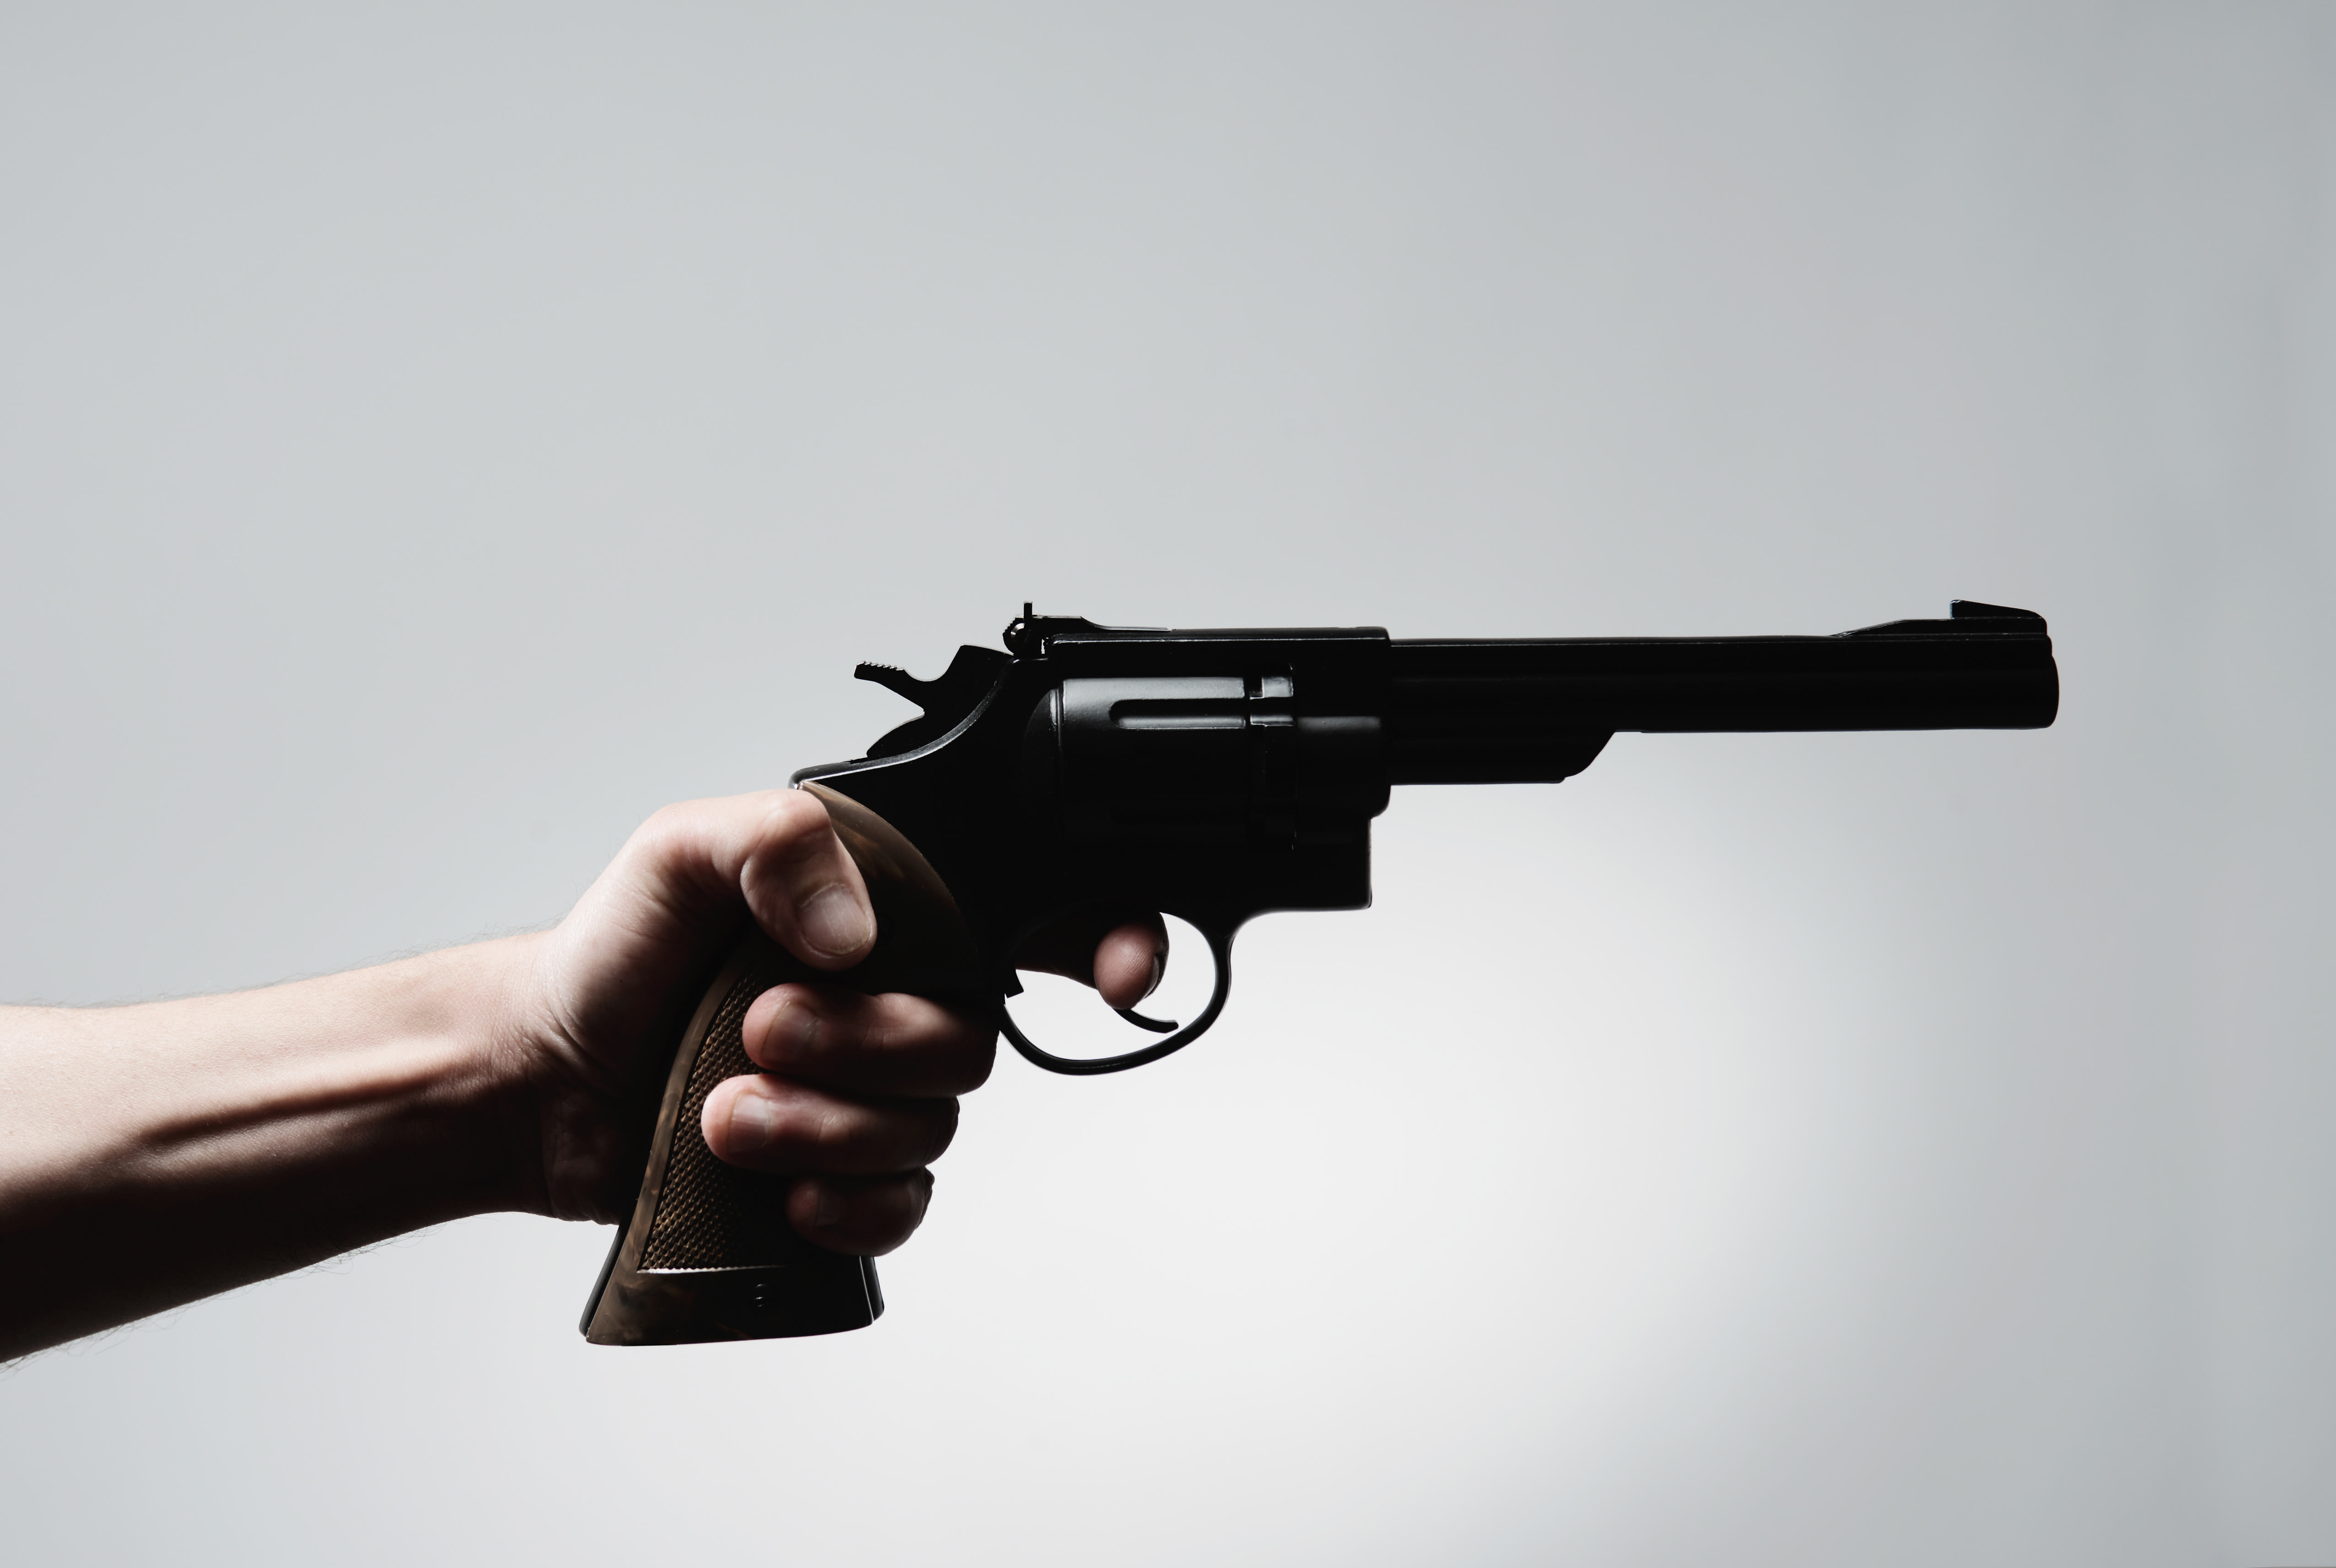 Image of a handgun. © Getty Images / PM Images